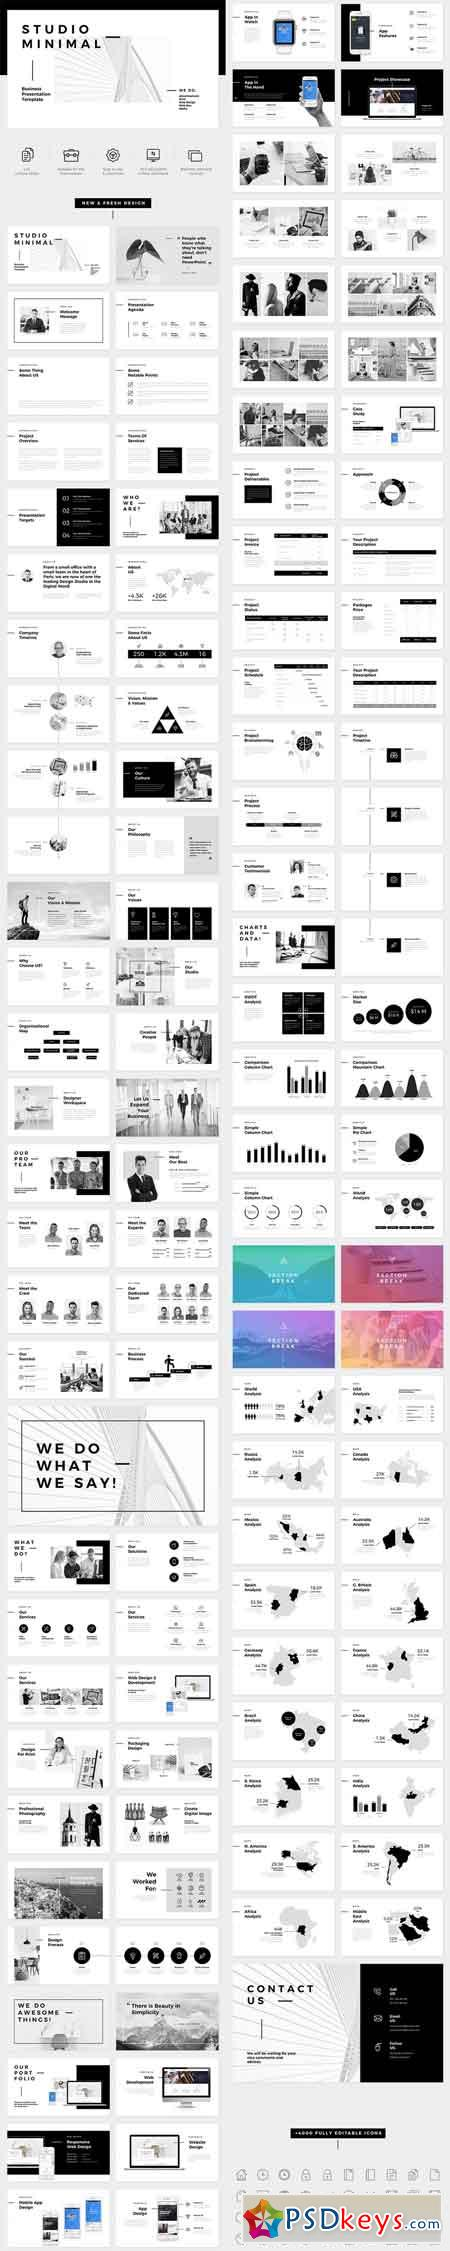 Studio Minimal Presentation PowerPoint Template 20939116